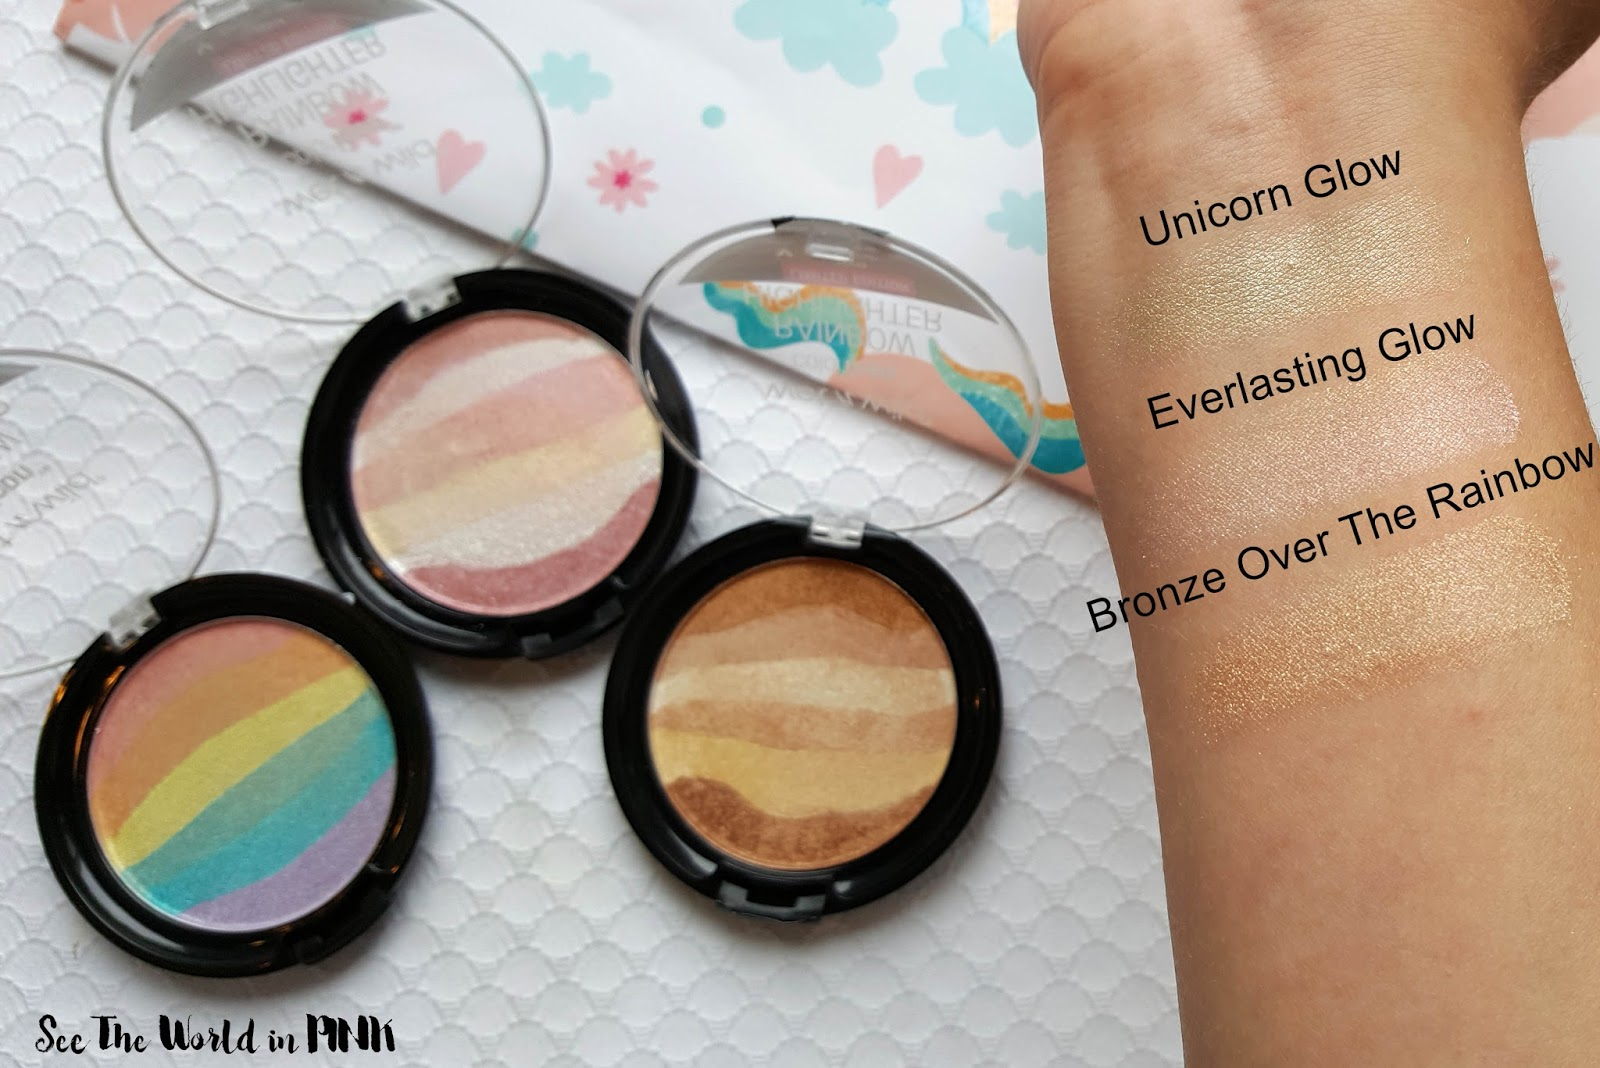 Wet 'N Wild Unicorn Glow Whole Summer Collection - Rainbow Highlighters and More!